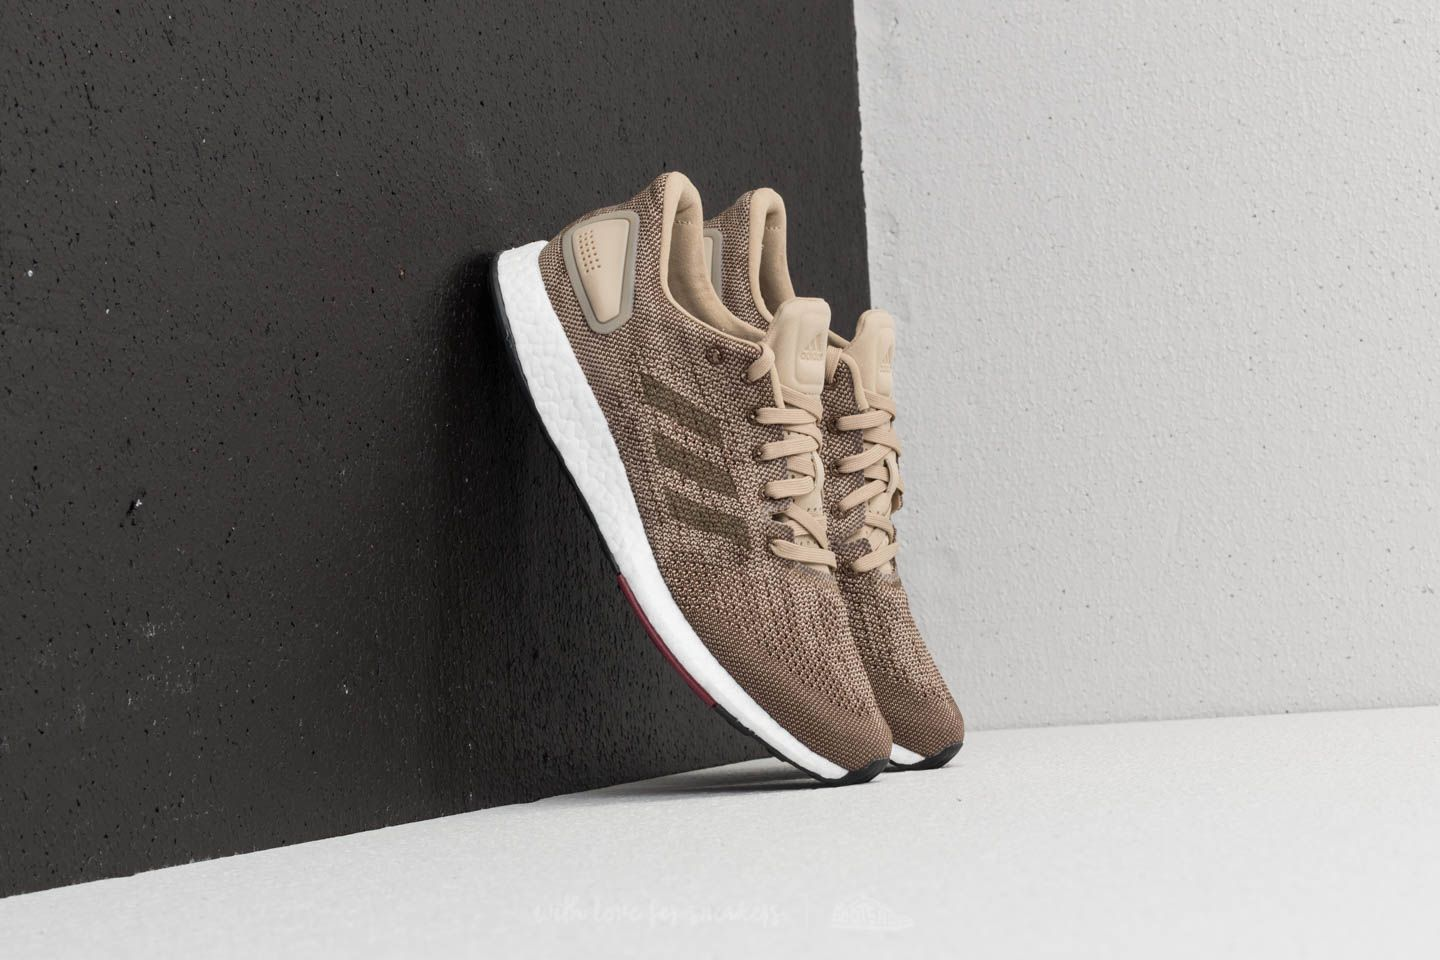 online store 12cde fe861 adidas Pureboost DPR Raw Gold Trace Olive Collegiate Burgundy at a great  price 69